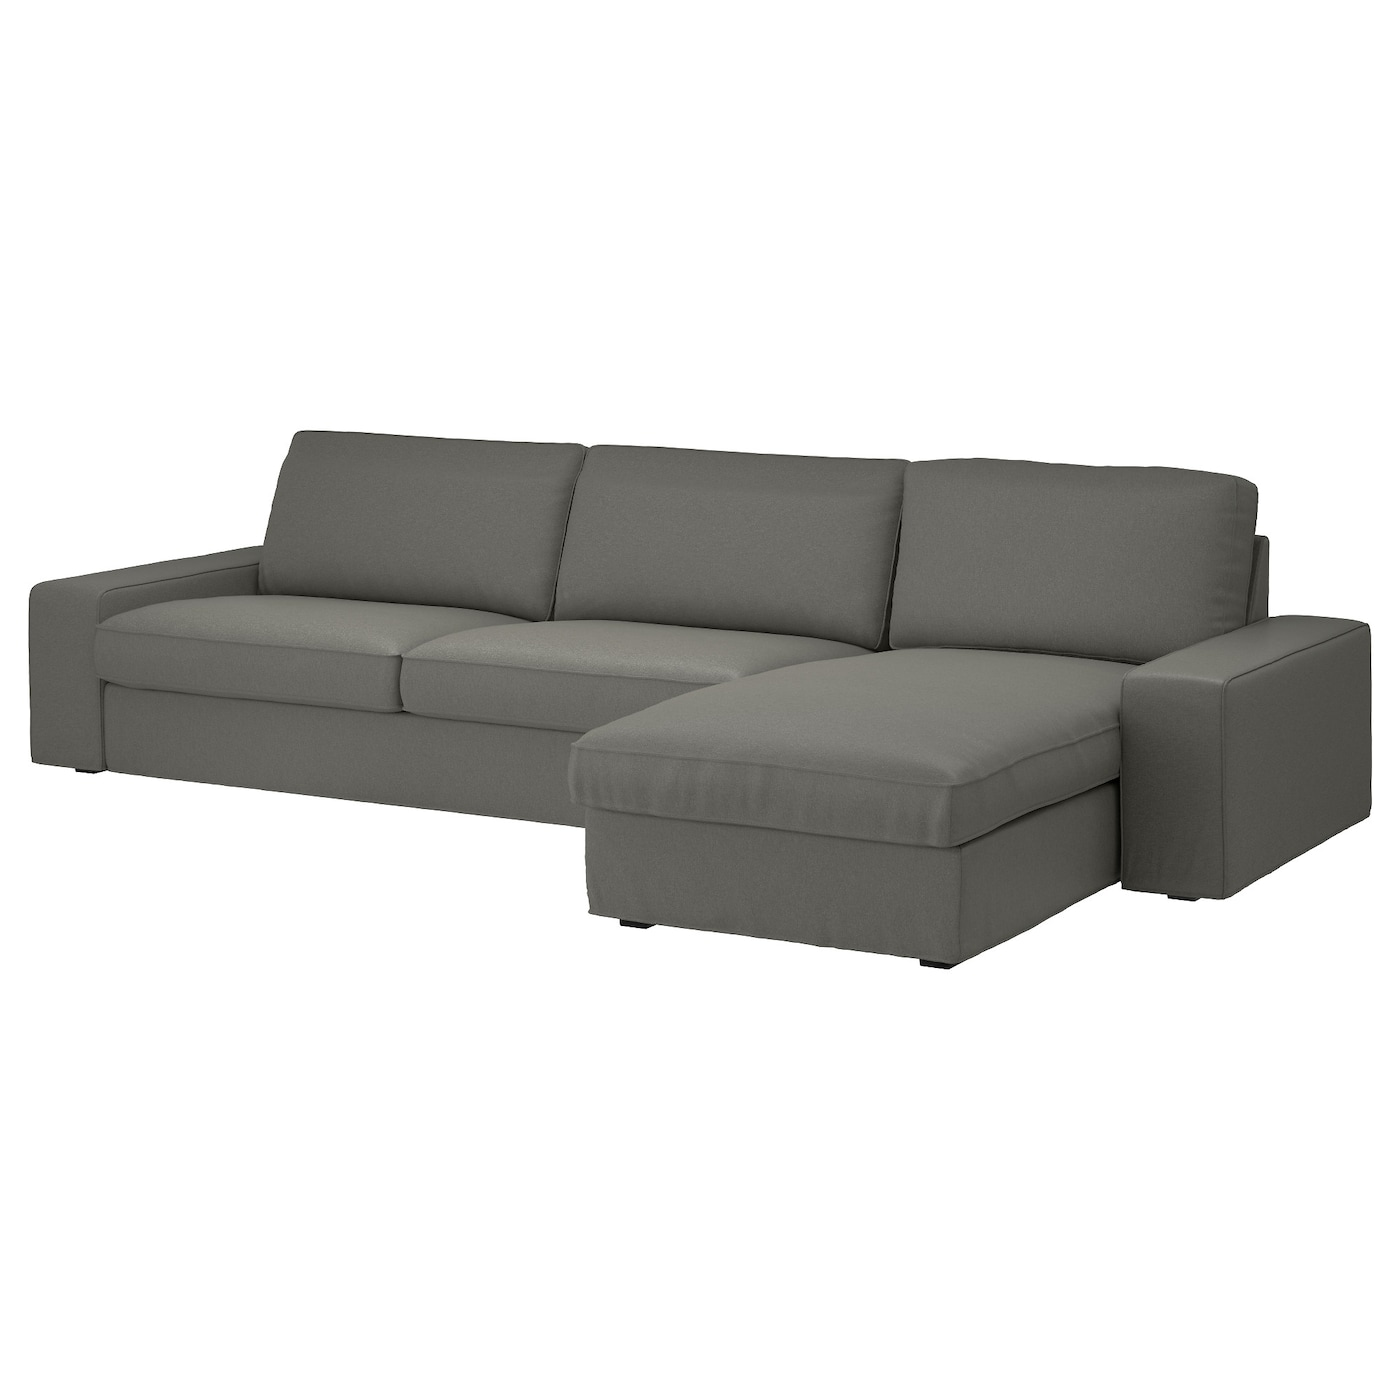 KIVIK Three seat sofa and chaise longue Borred grey green IKEA